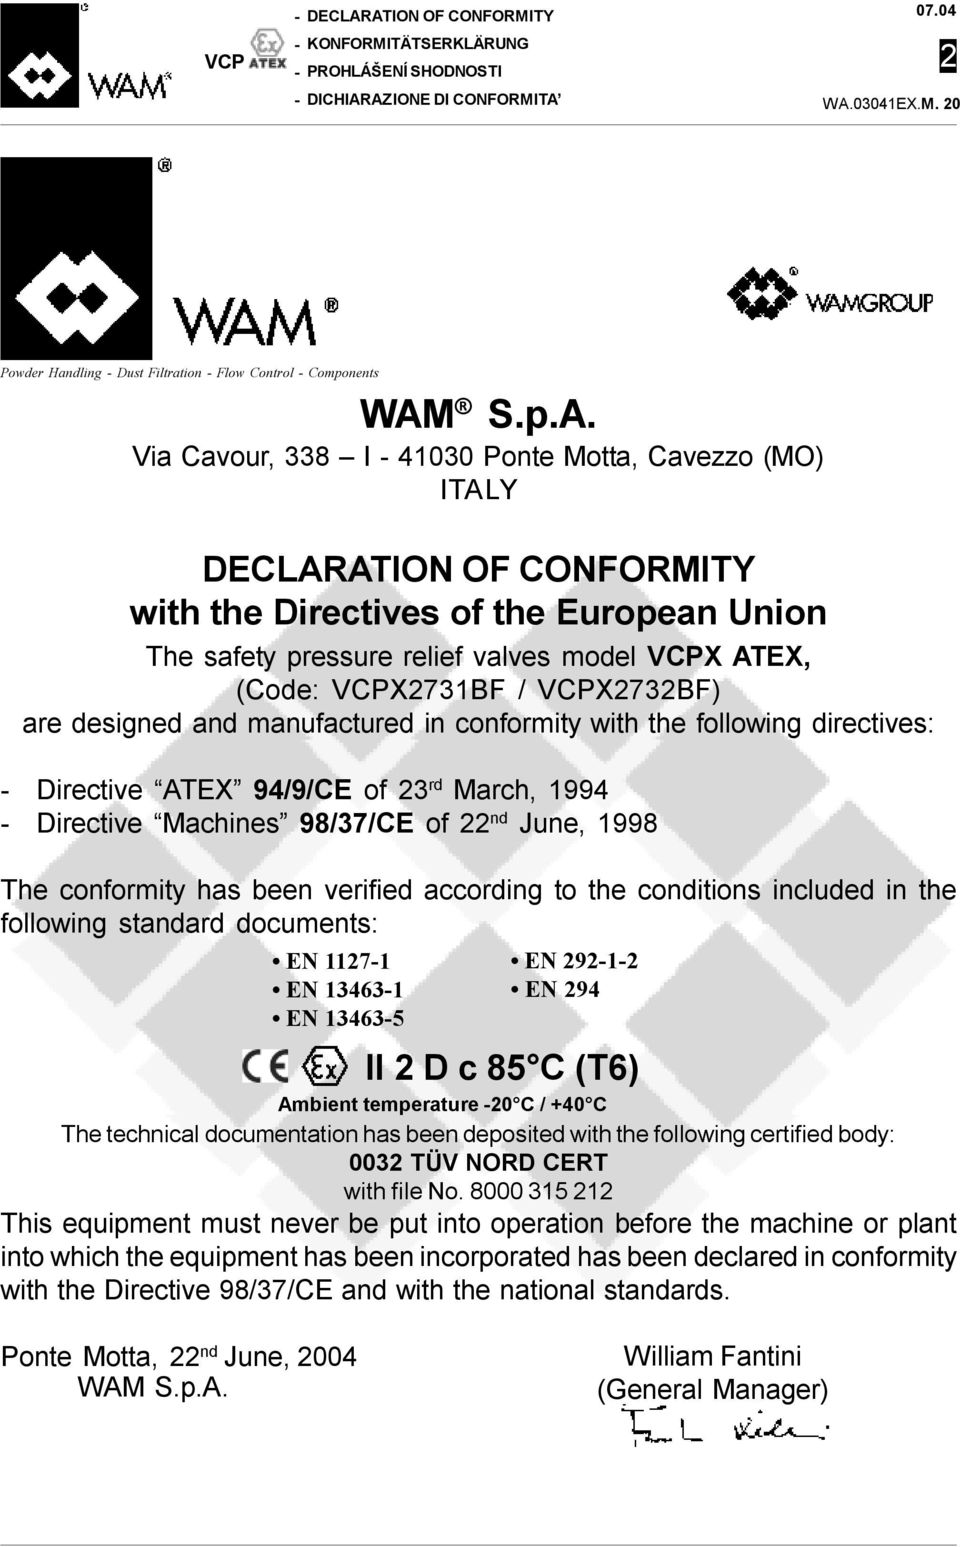 338 I - 41030 Ponte Motta, Cavezzo (MO) ITALY DECLARATION OF CONFORMITY with the Directives of the European Union The safety pressure relief valves model VCPX ATEX, (Code: VCPX731BF / VCPX73BF) are